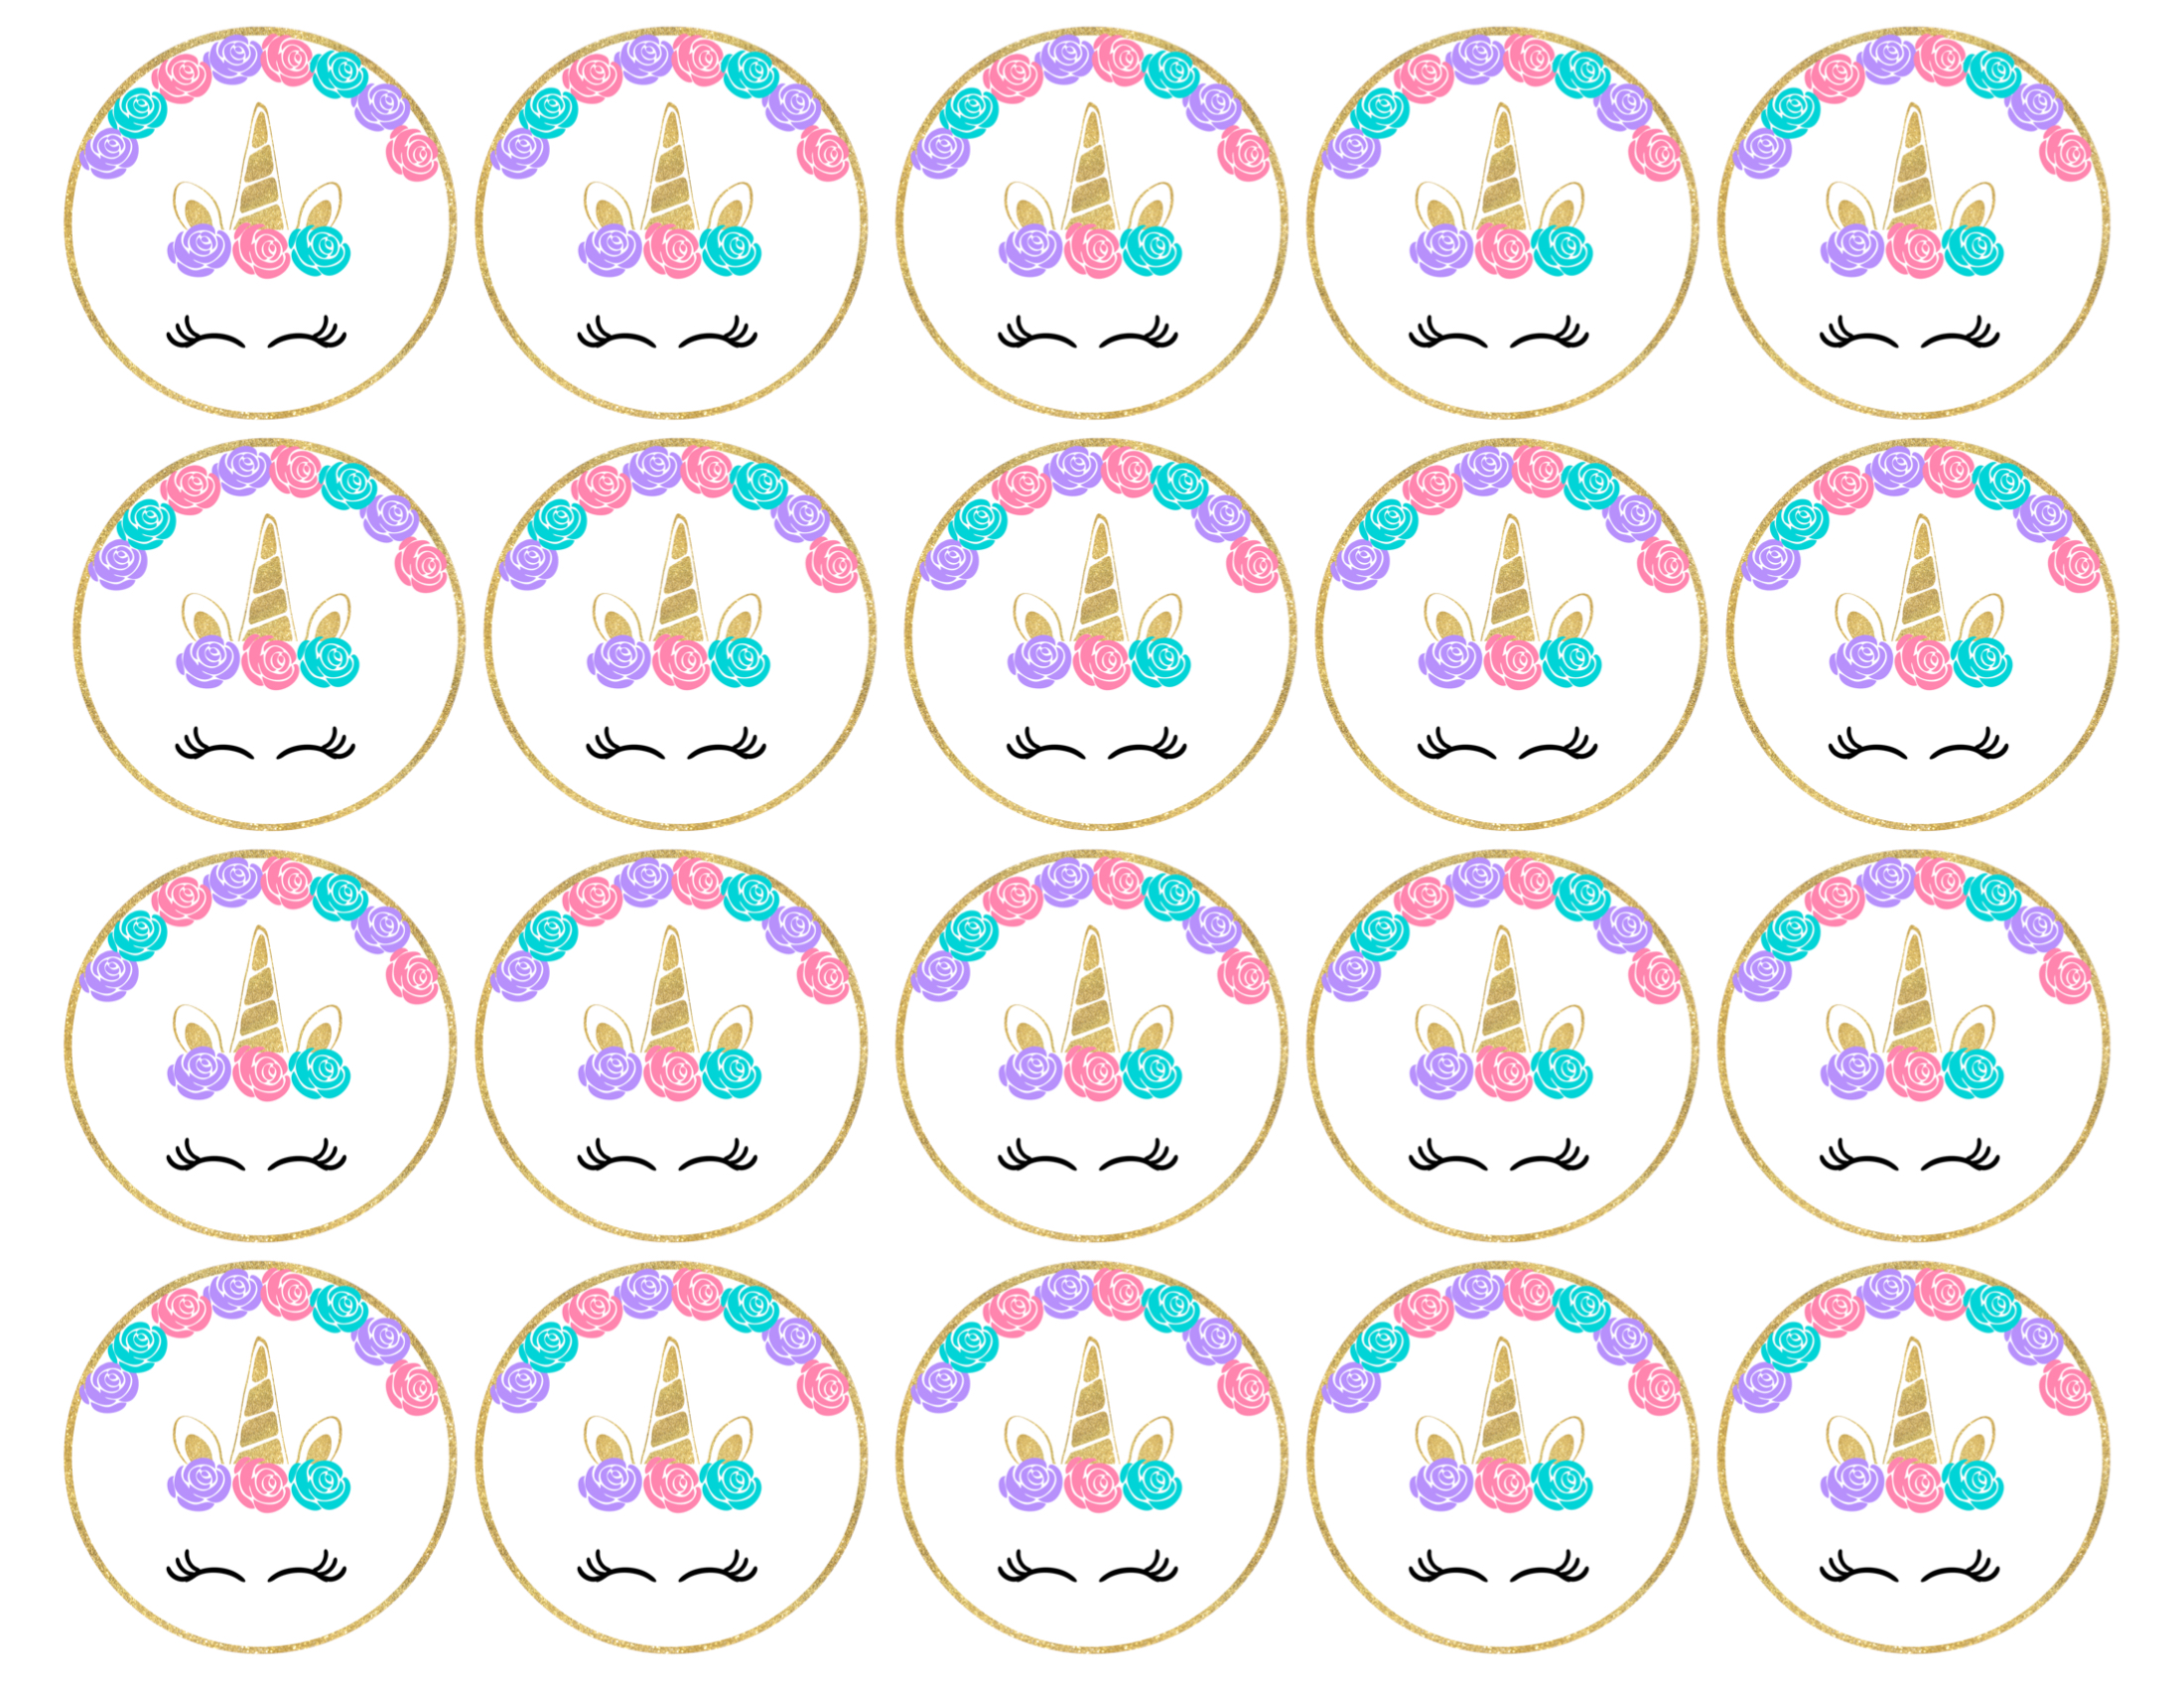 image regarding Free Printable Unicorn identified as No cost Printable Unicorn Cupcake Toppers - Paper Path Style